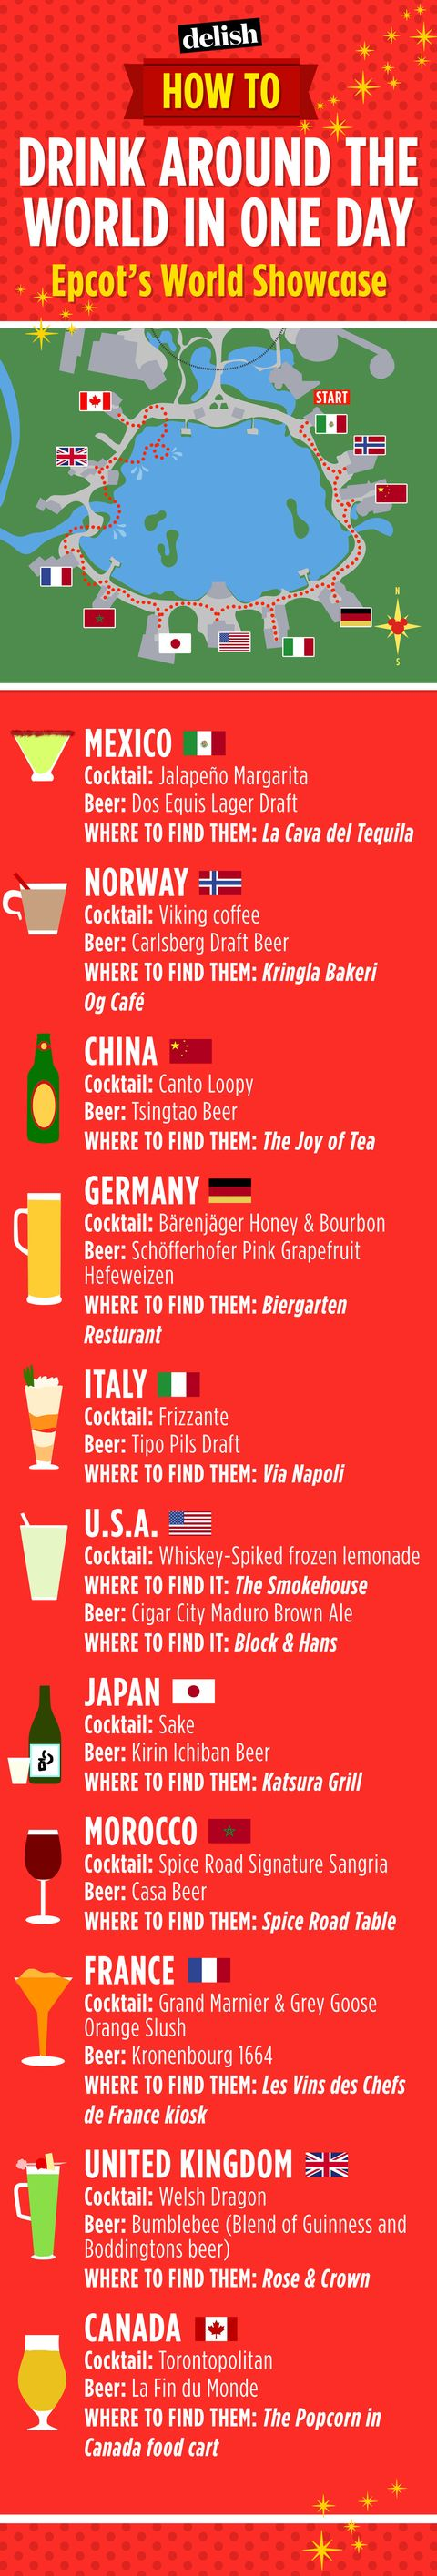 EPCOT Drinking Around World Pinterest Chart